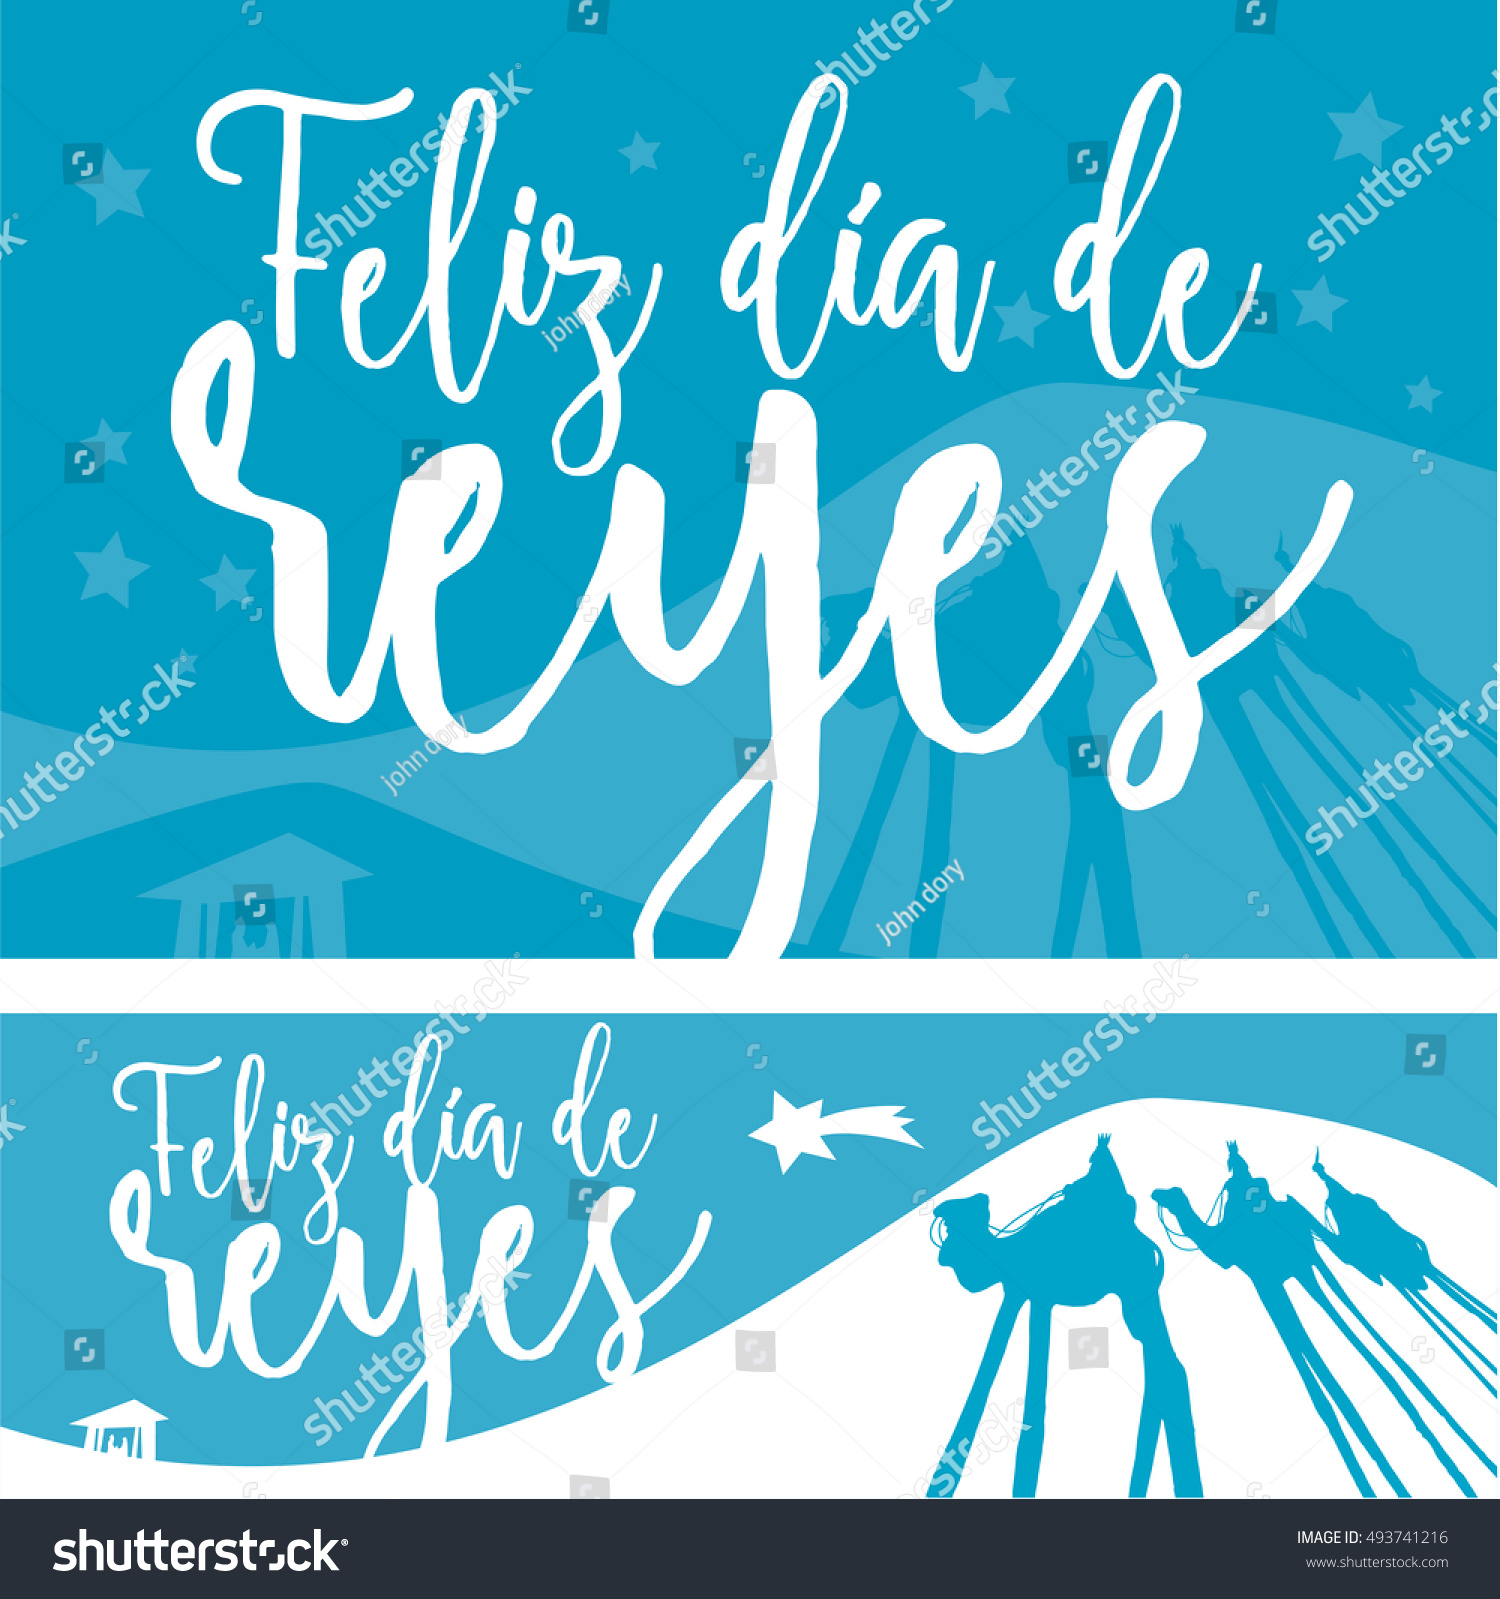 2 different banner Christmas vectors Happy Epiphany written in spanish